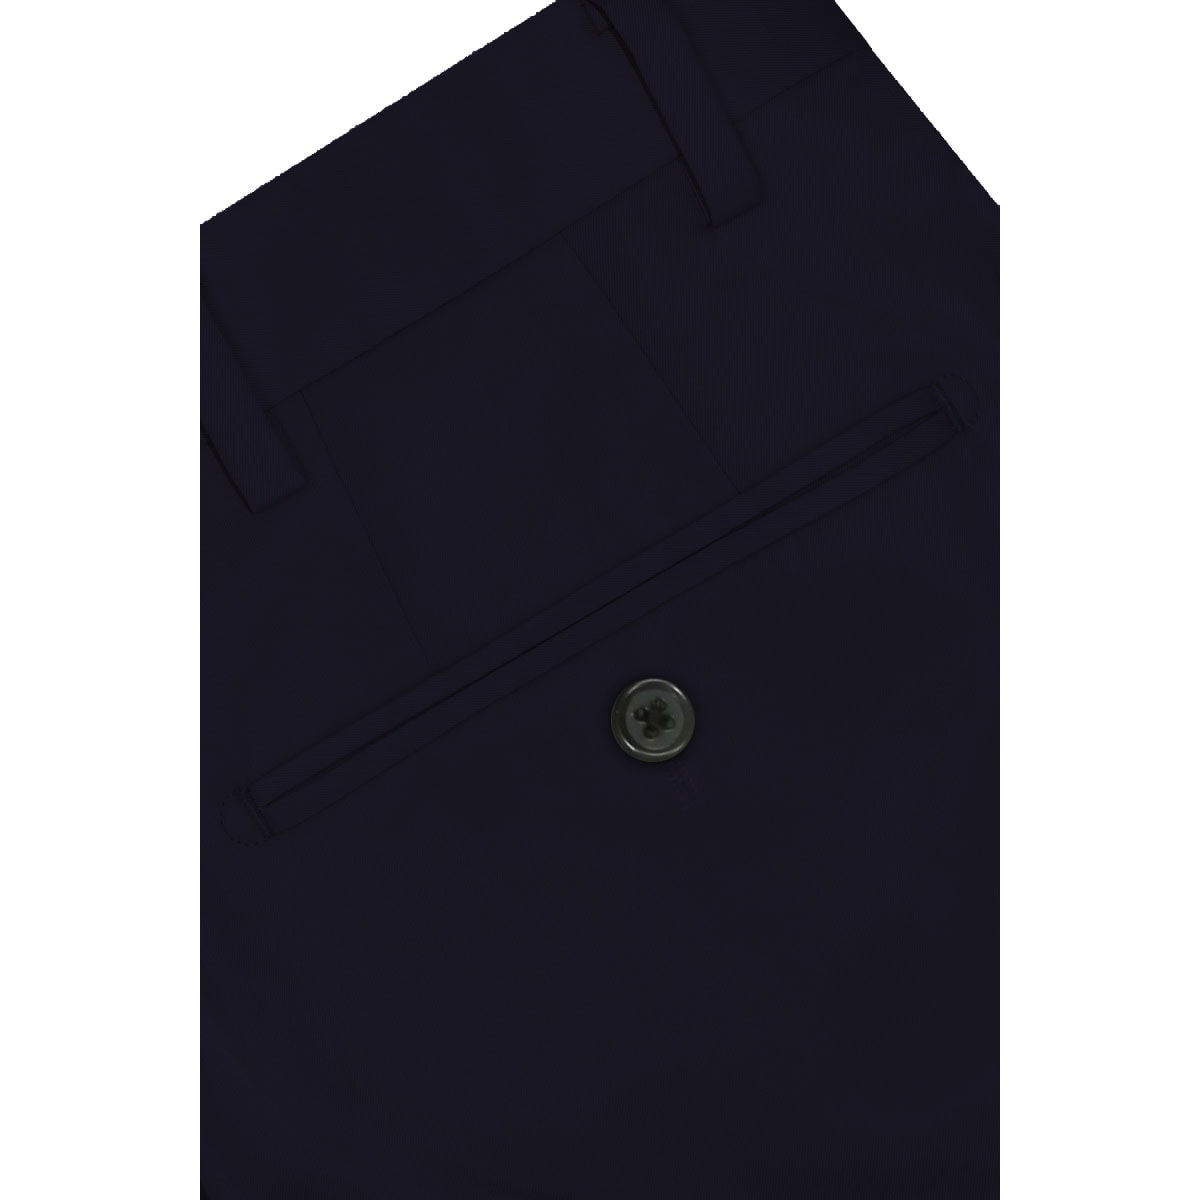 InStitchu Collection The Derrida Navy Cotton Stretch Chinos